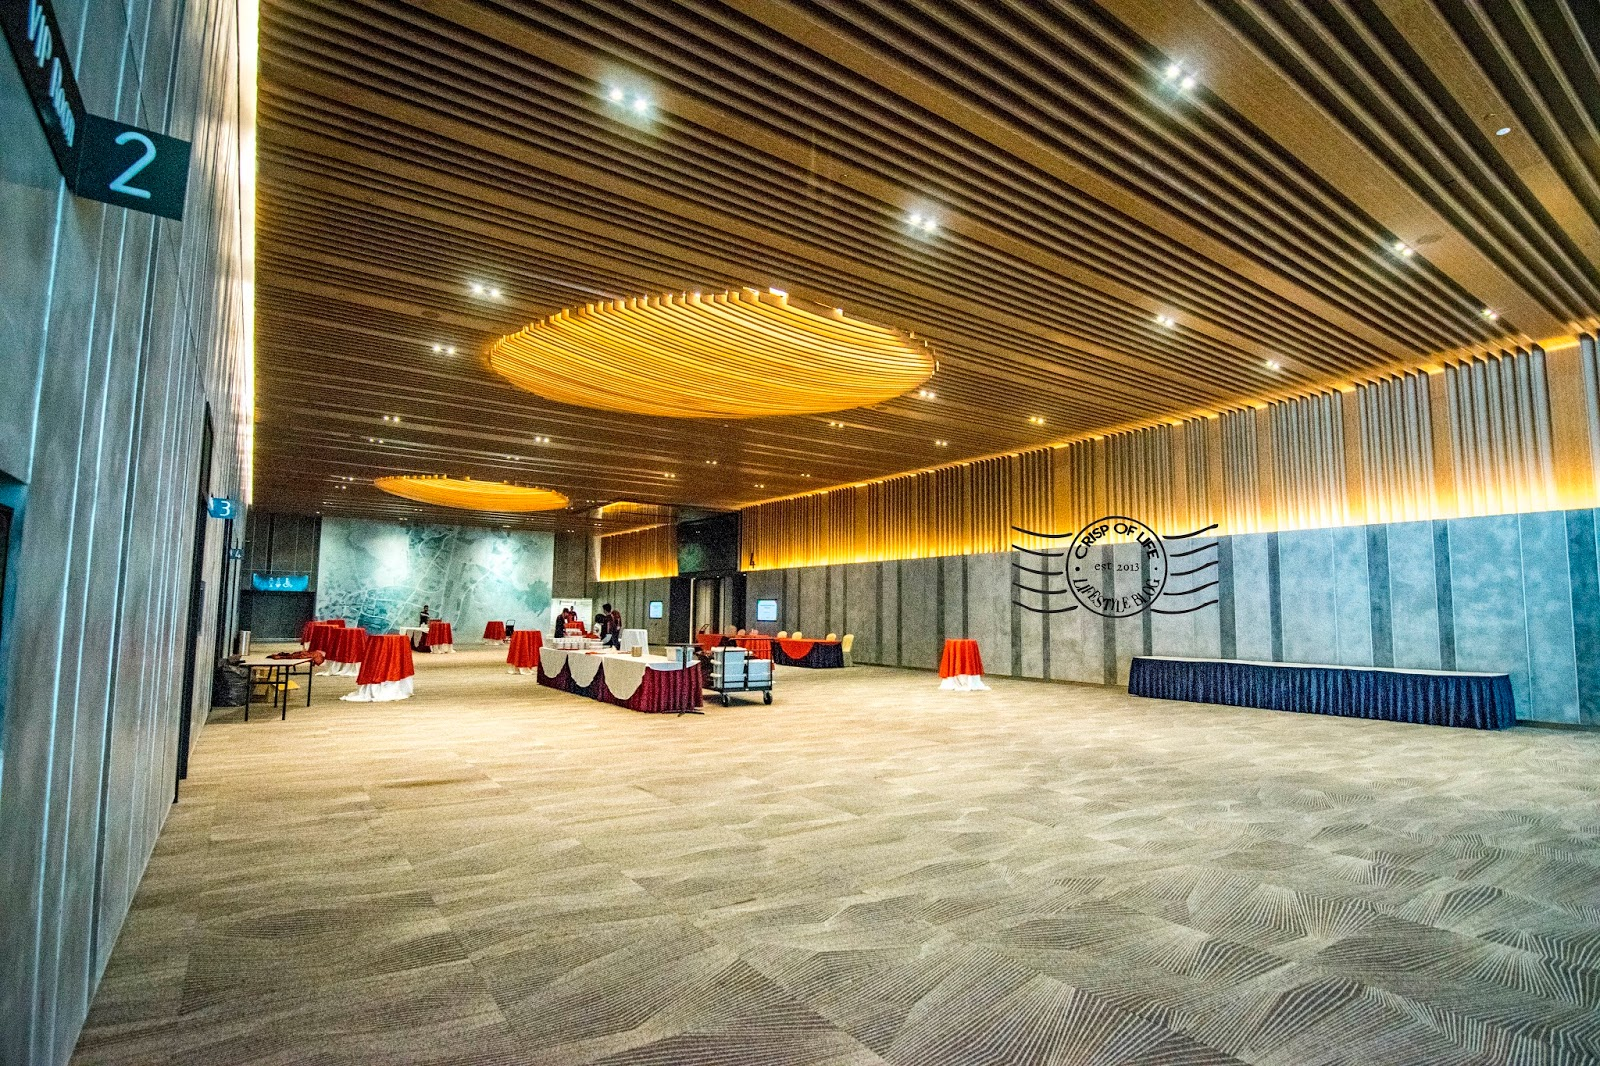 Setia SPICE Convention Centre & Arena in Penang